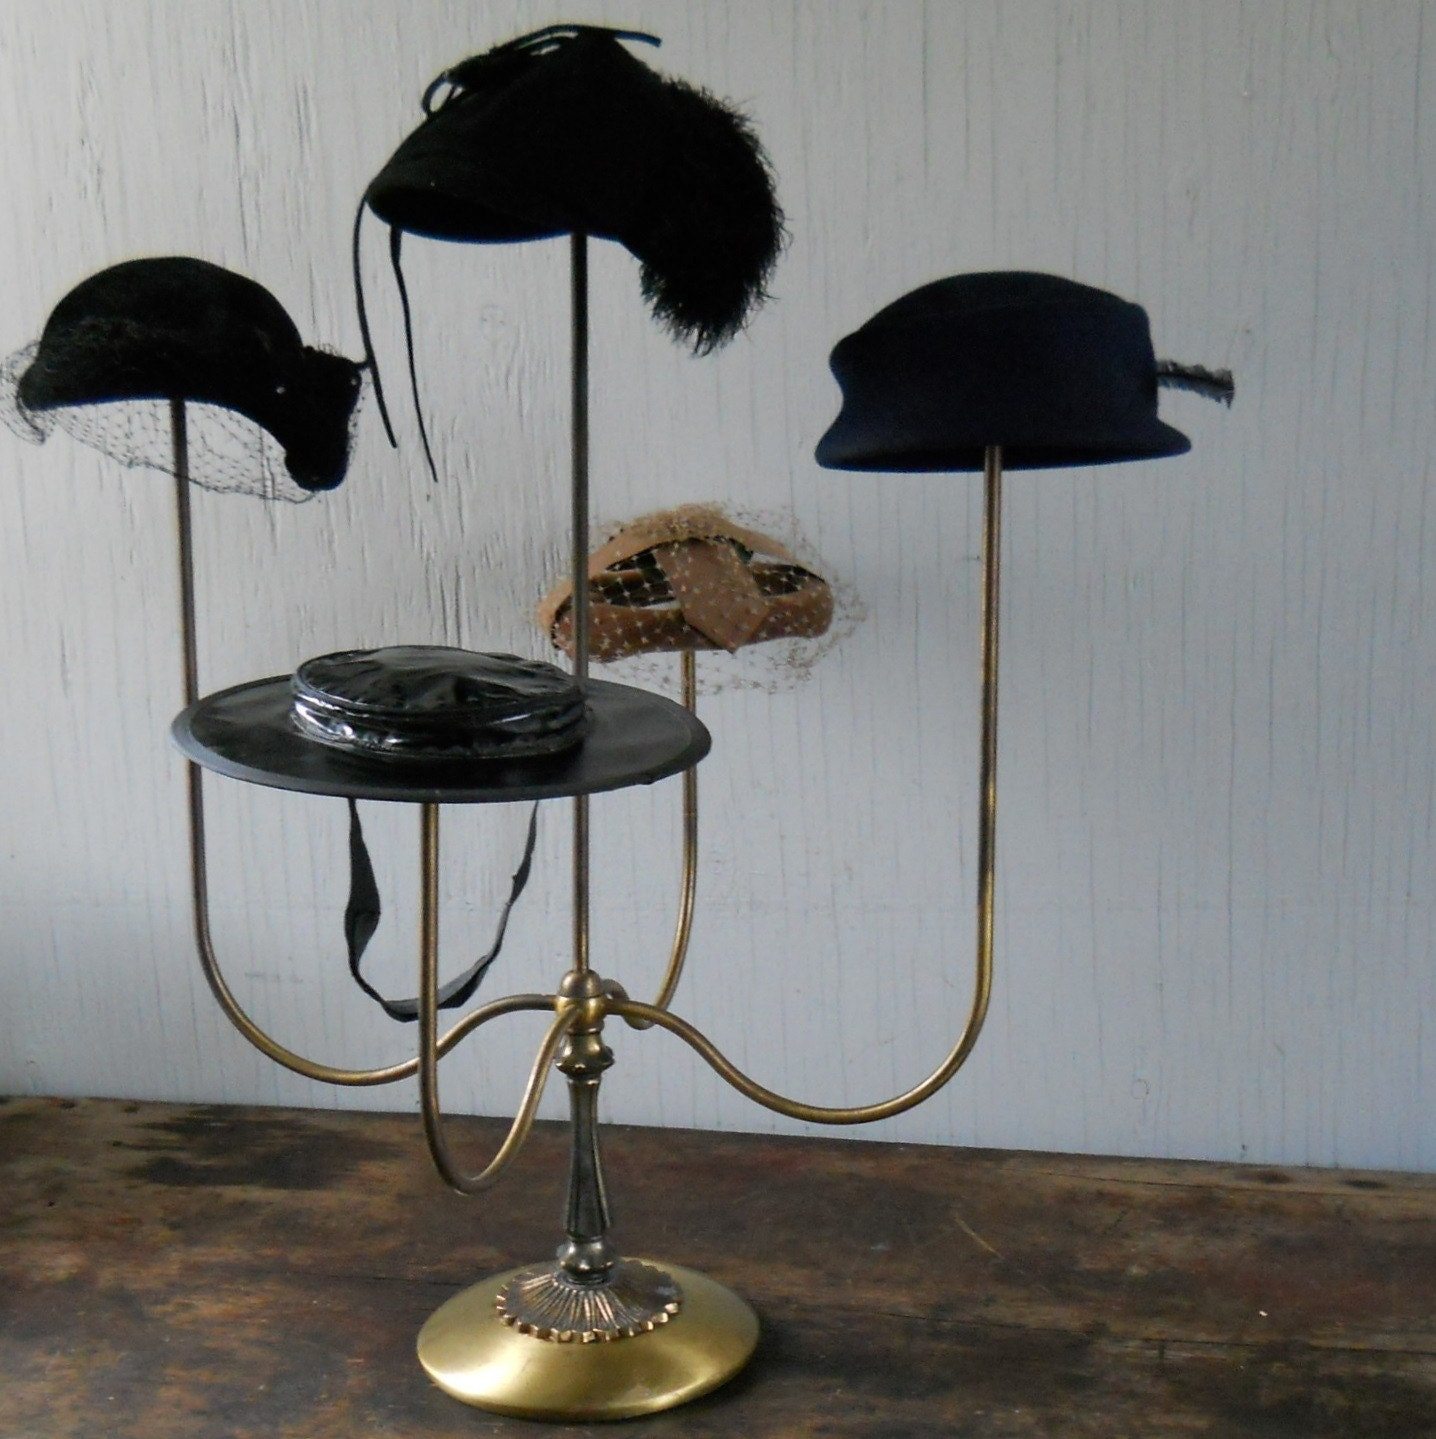 Exhibition Stand Vintage : Vintage counter top hat display stand